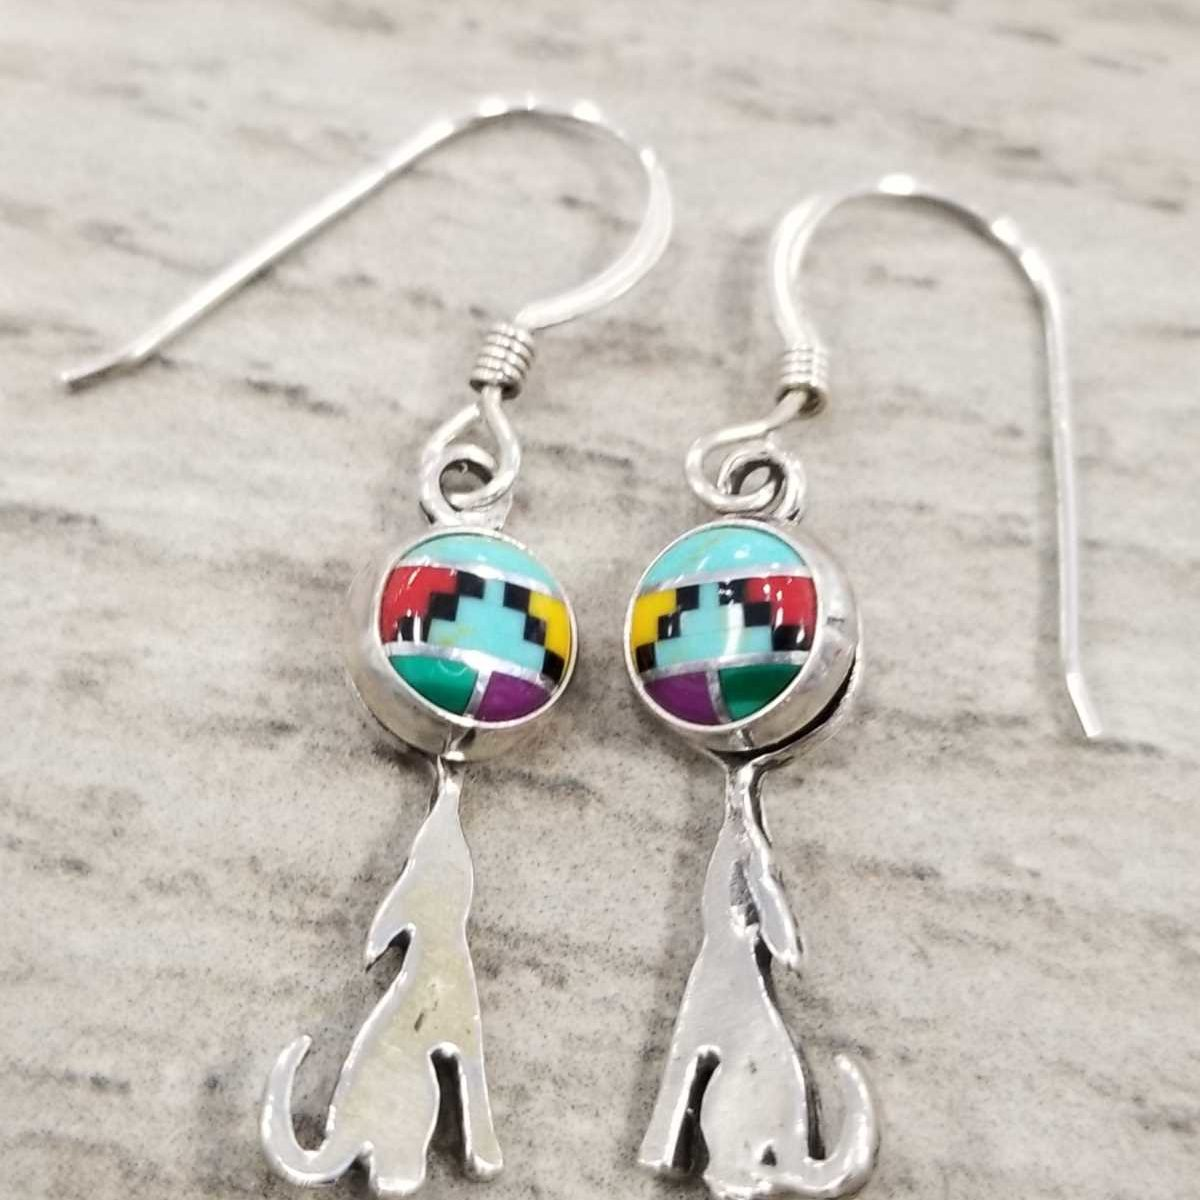 southwestern style stone inlay earrings with coyote